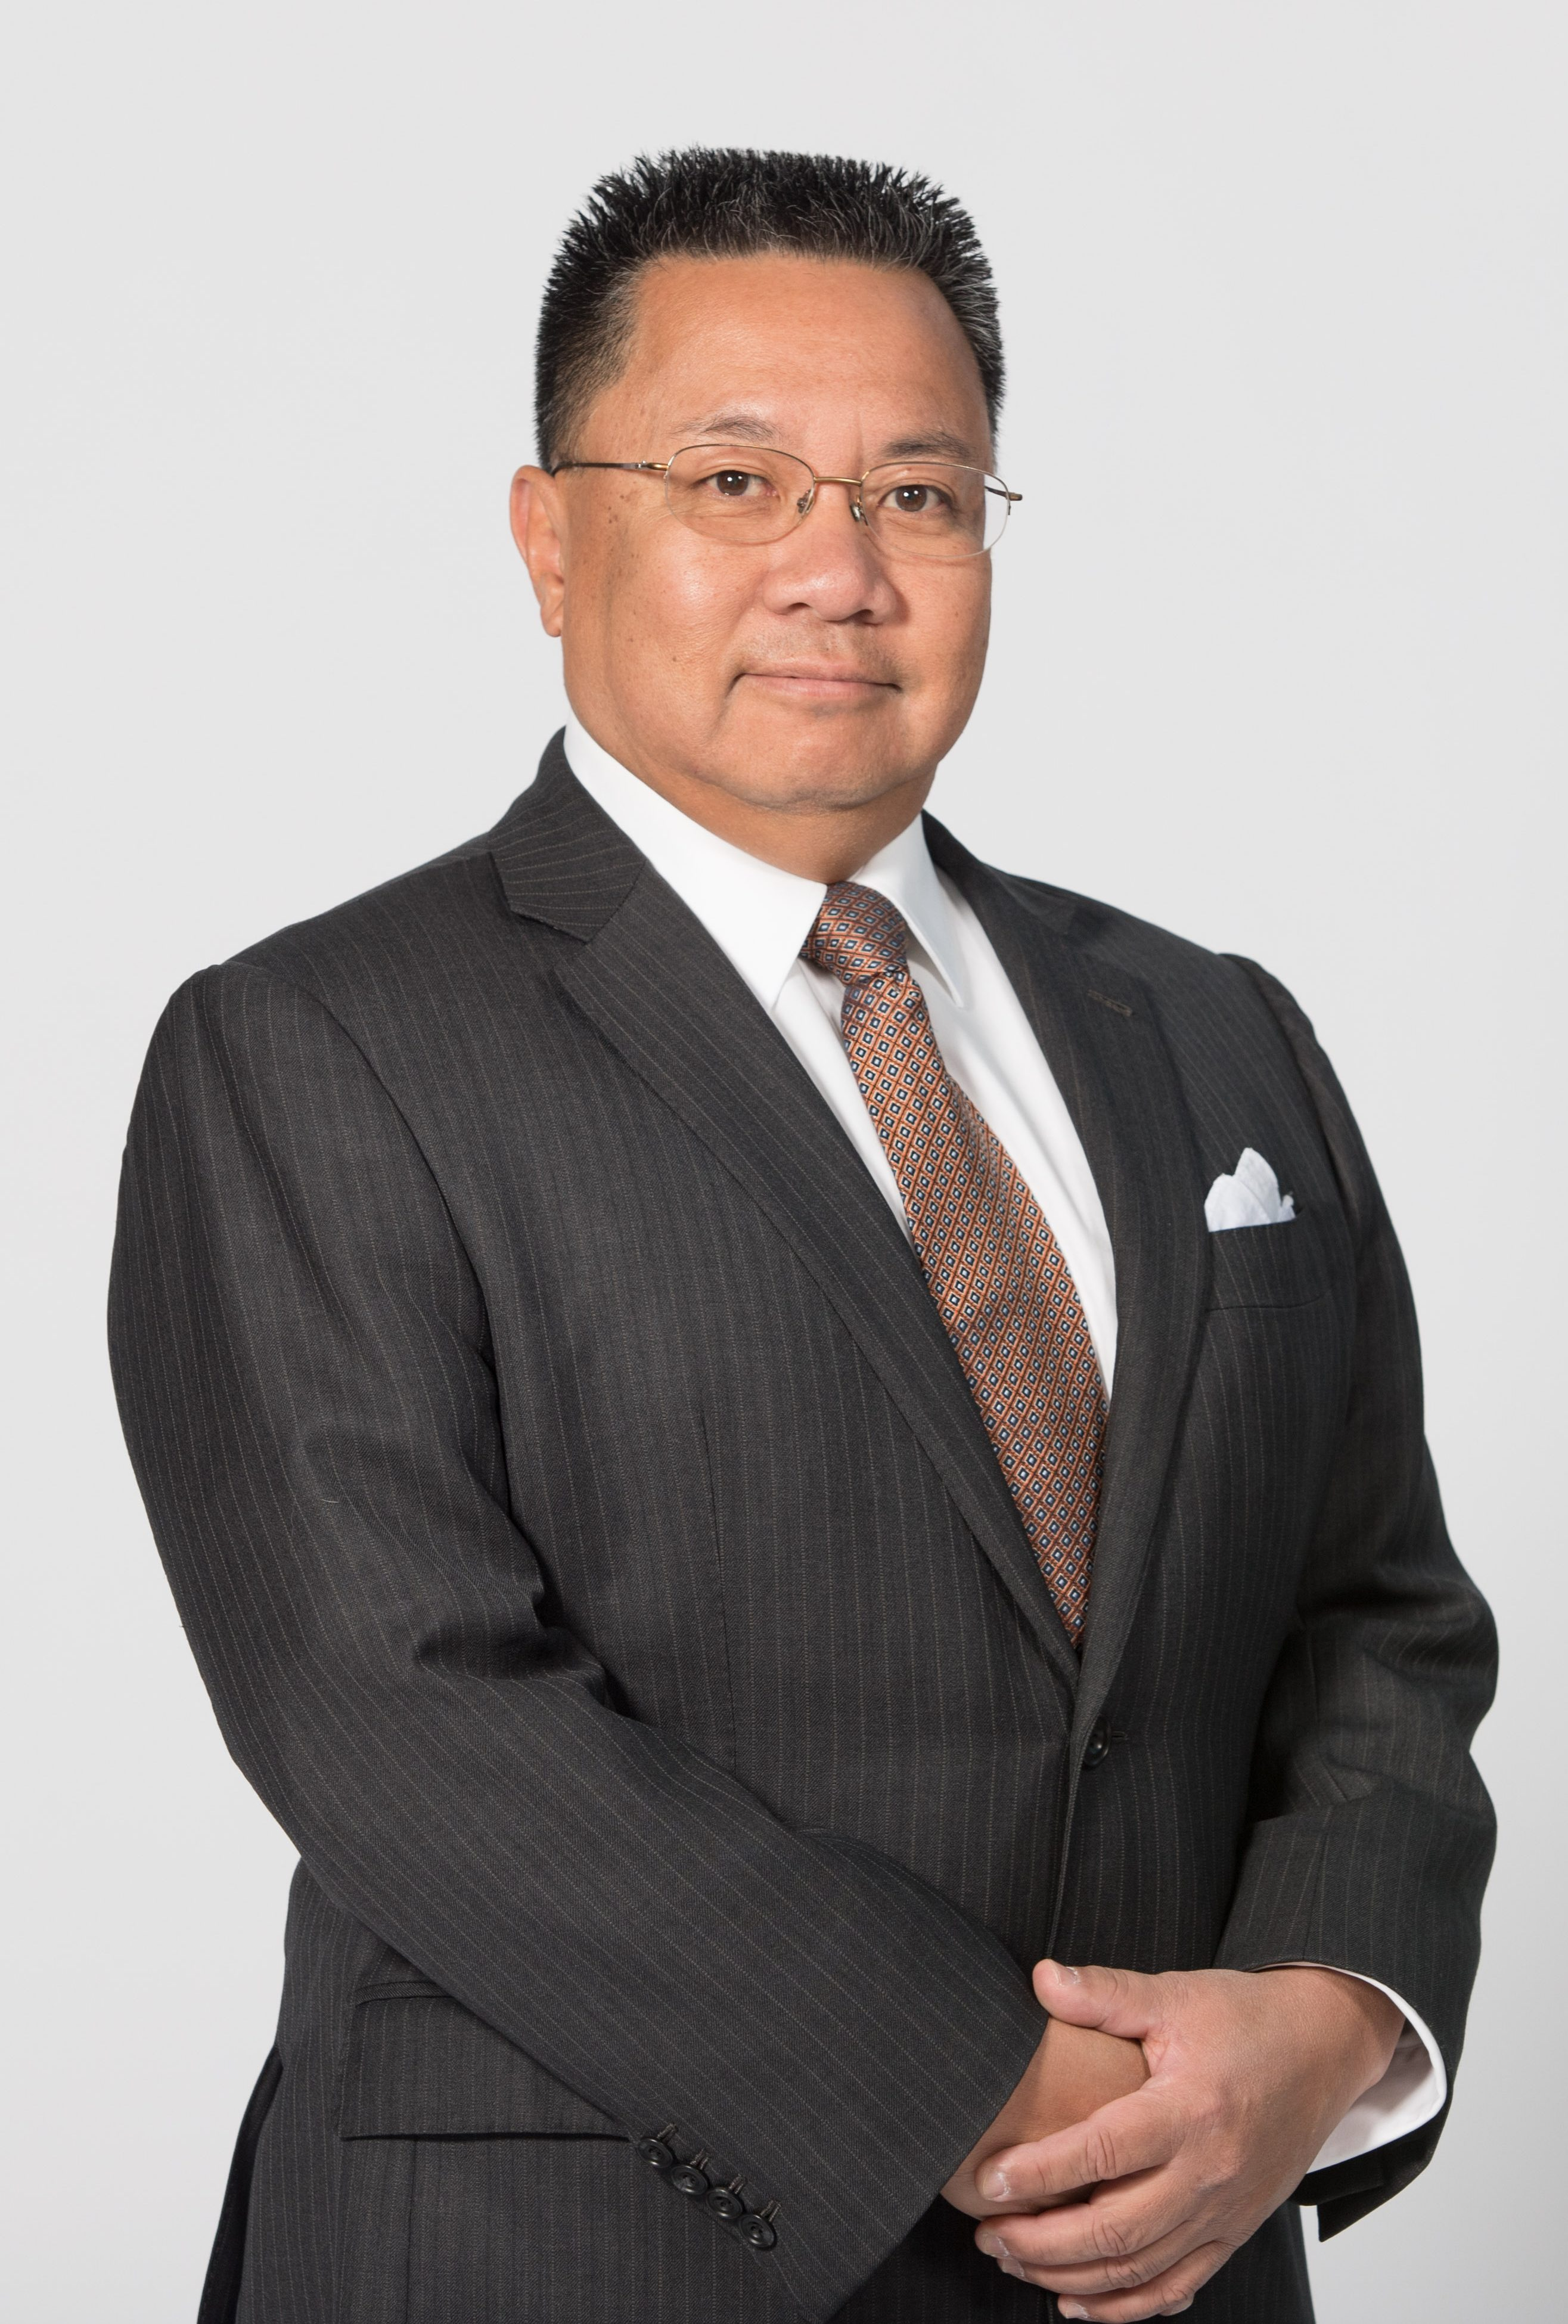 Harry K. Liu